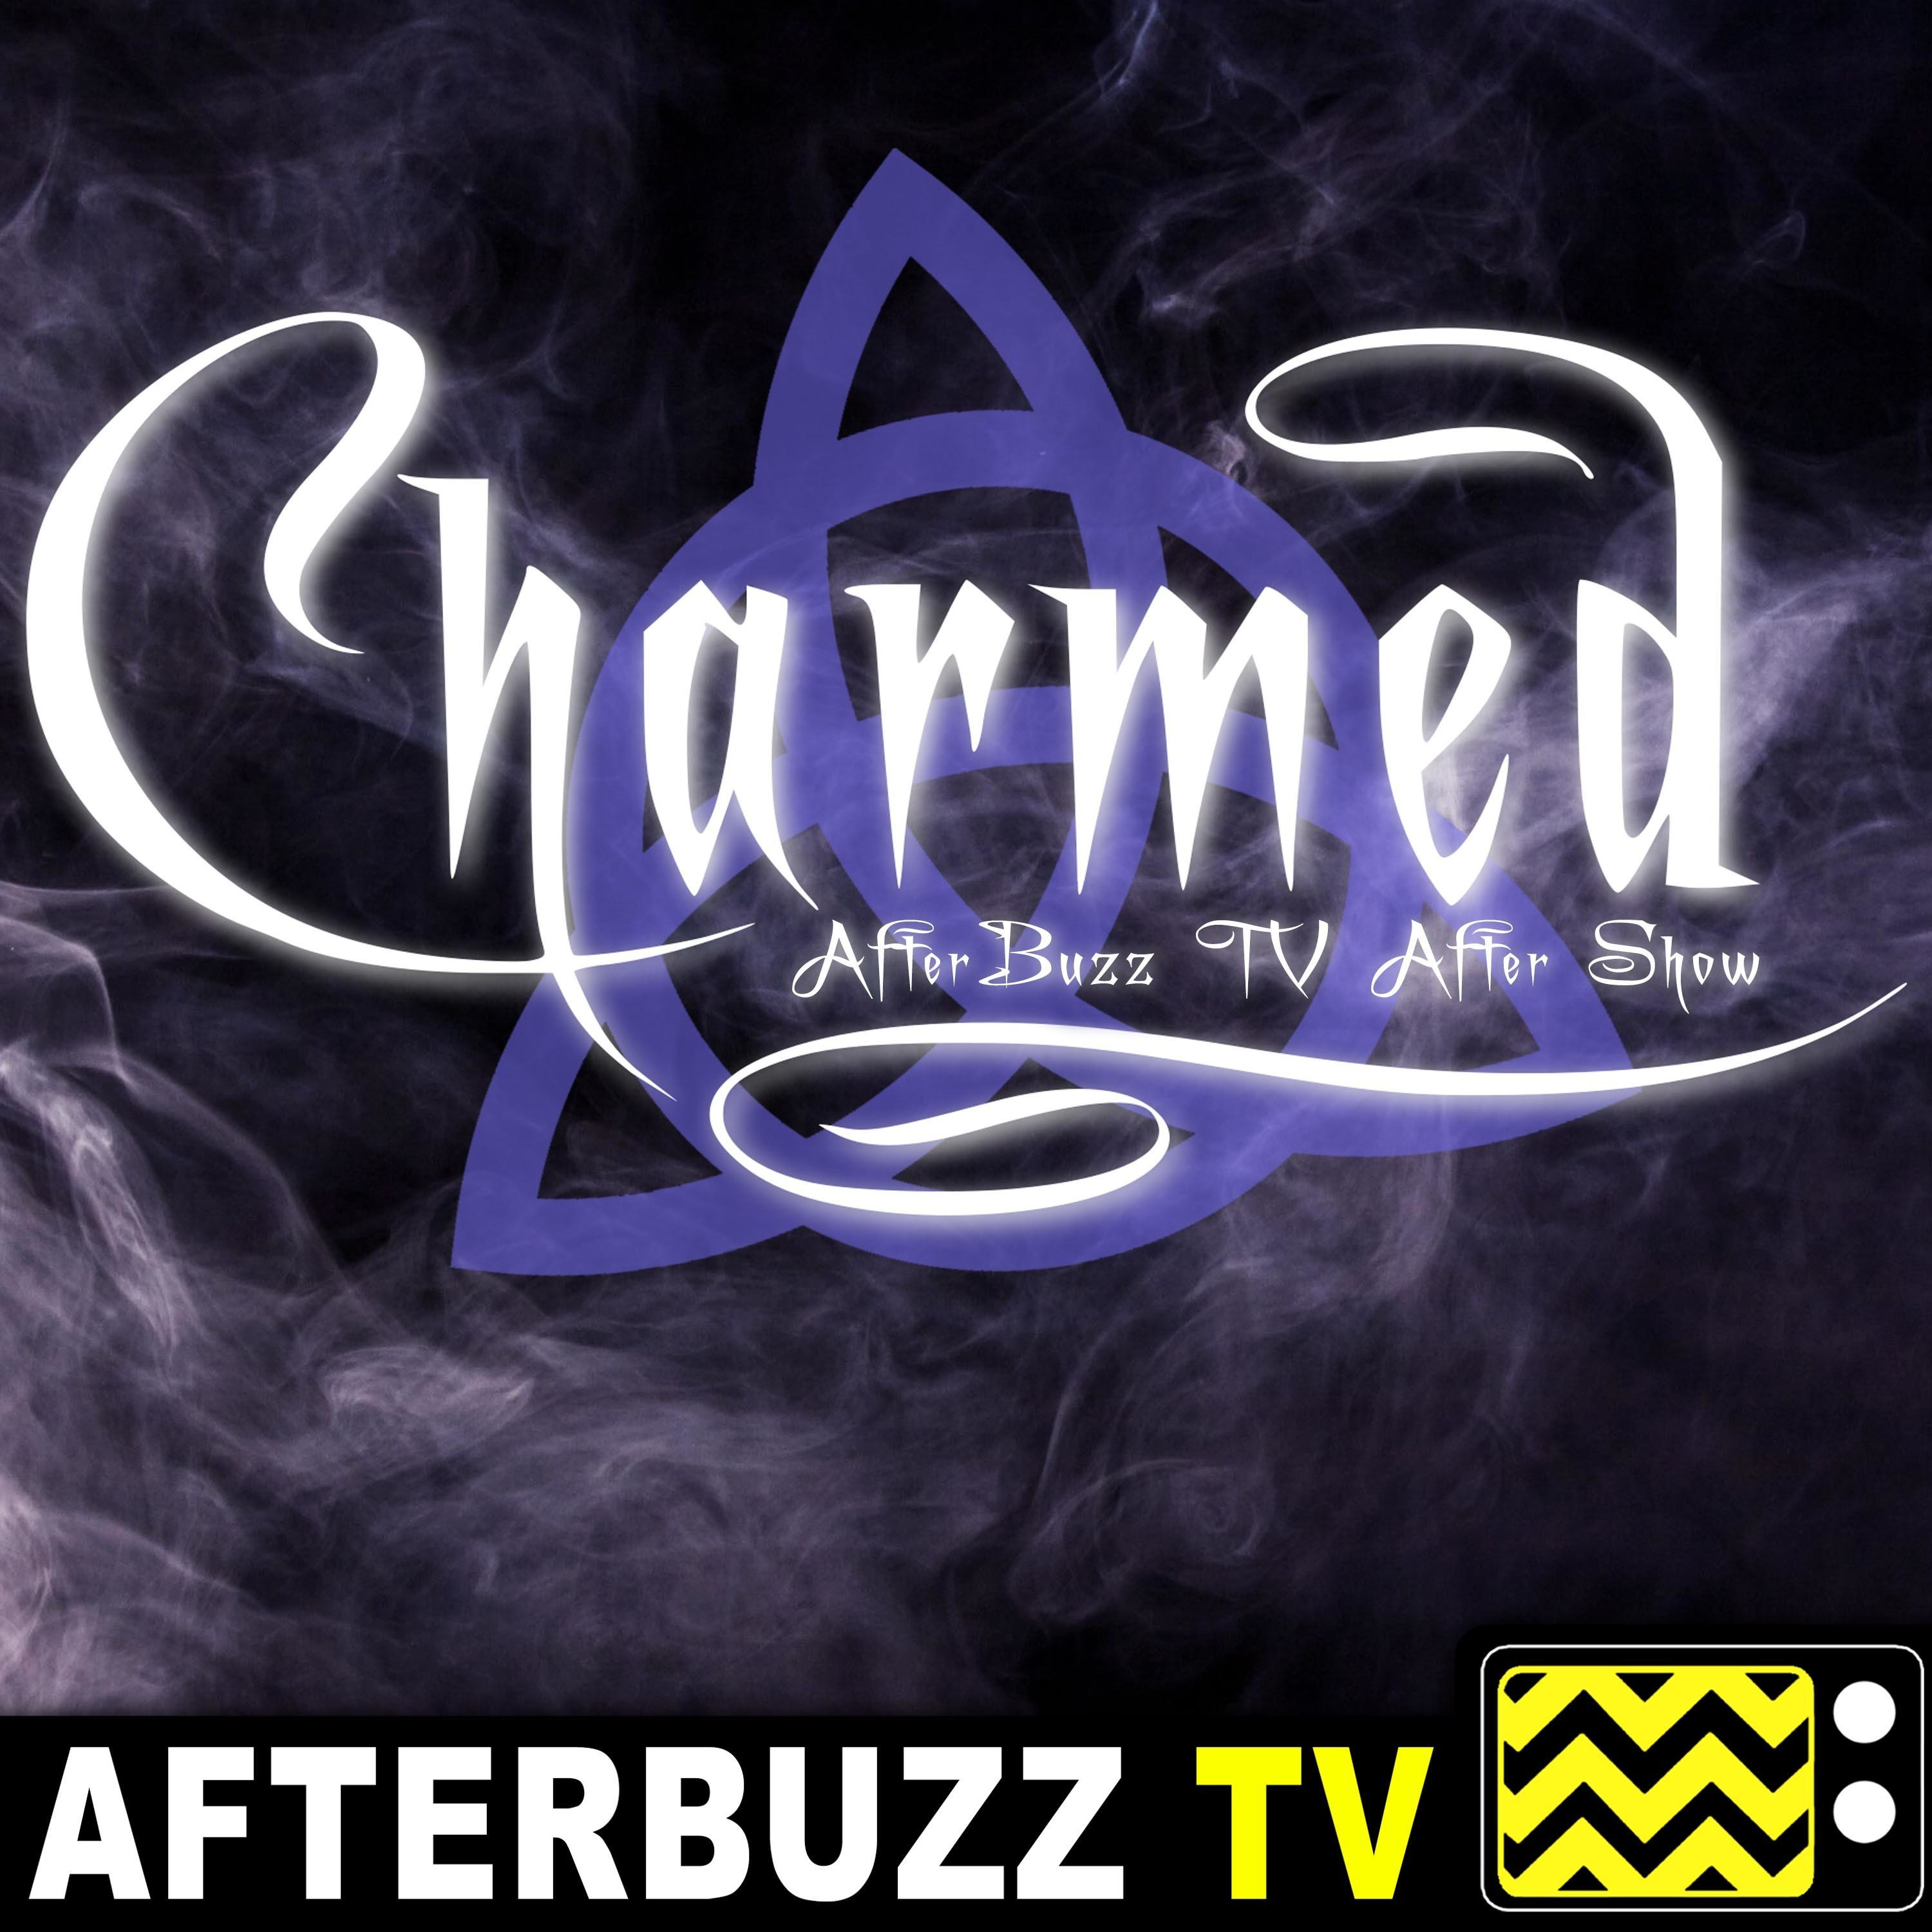 Charmed Reviews & After Show